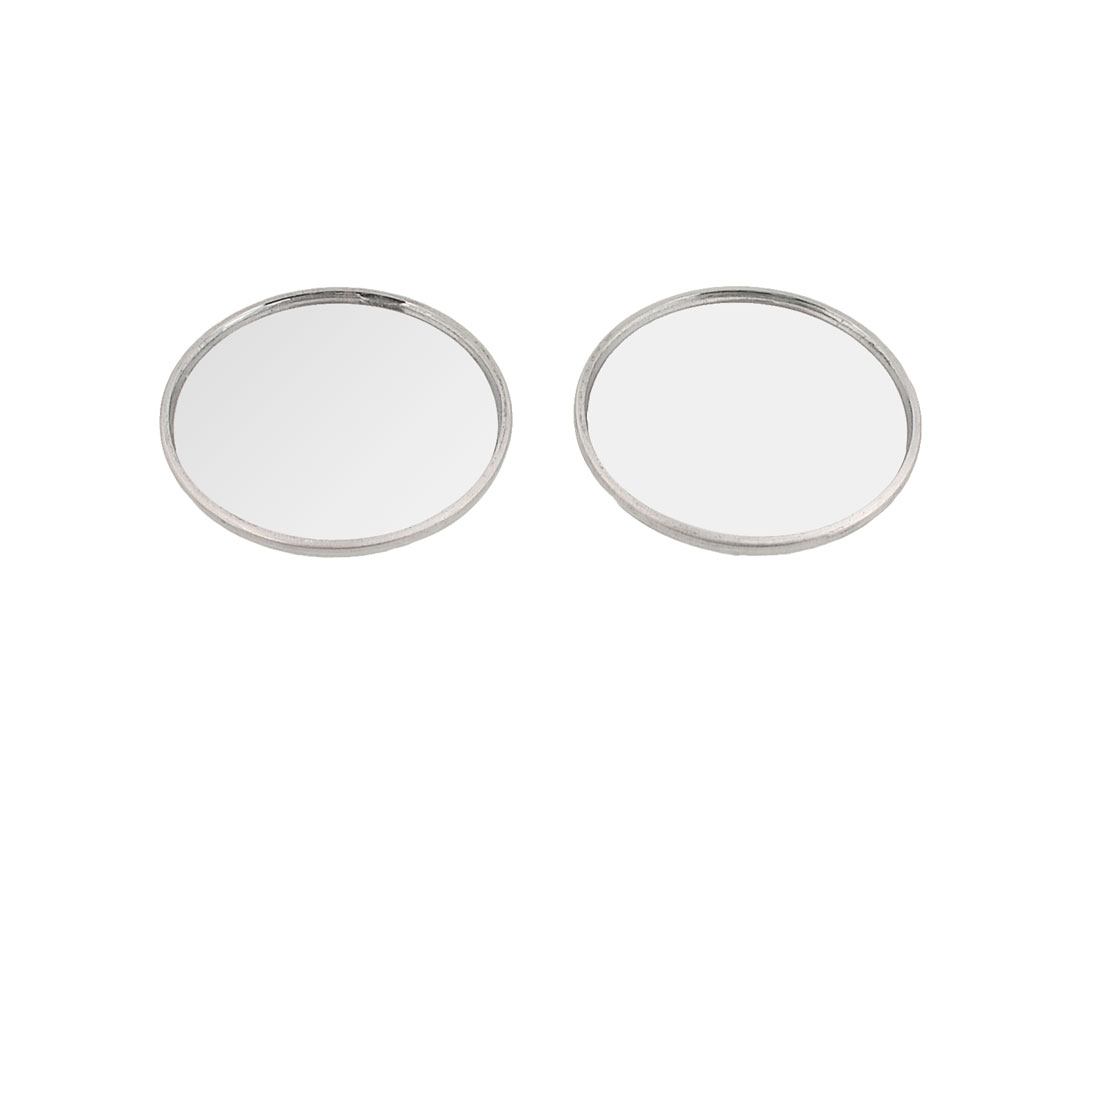 "2 Pcs 2"" Wide Angle Convex Round Blind Spot Mirror Silver Tone"